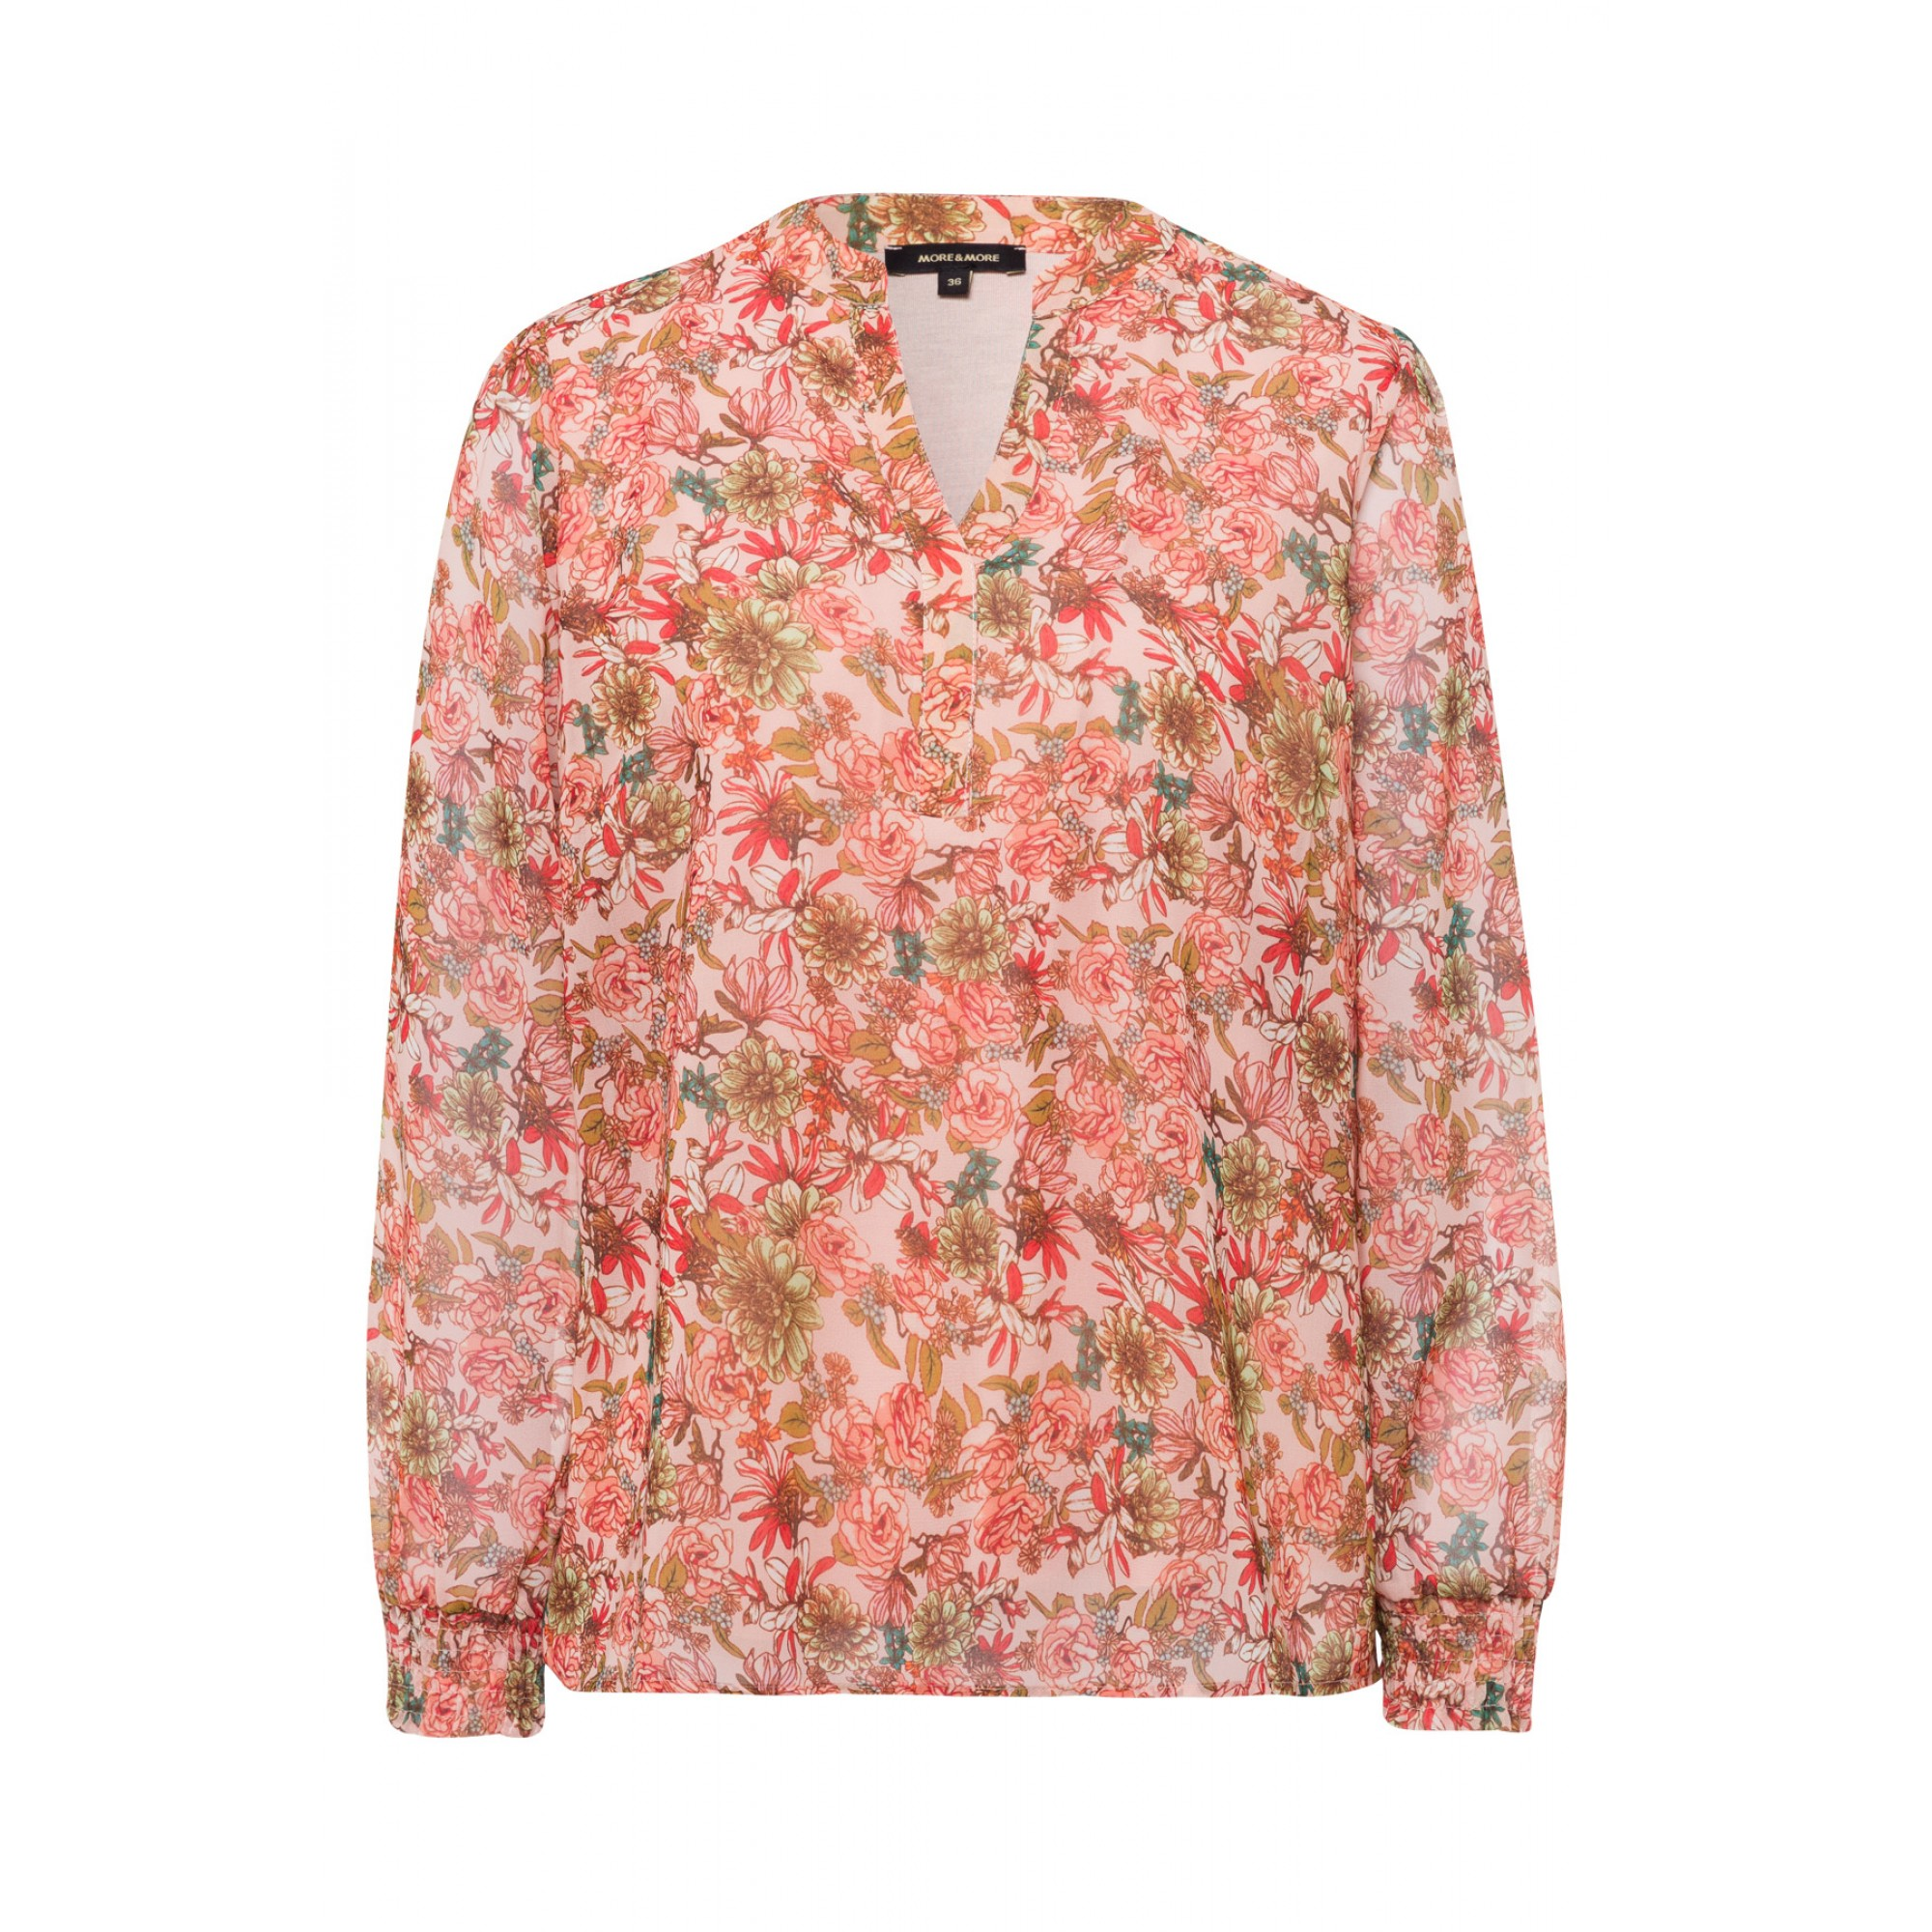 More & More Bluse mit floralem Muster apricot